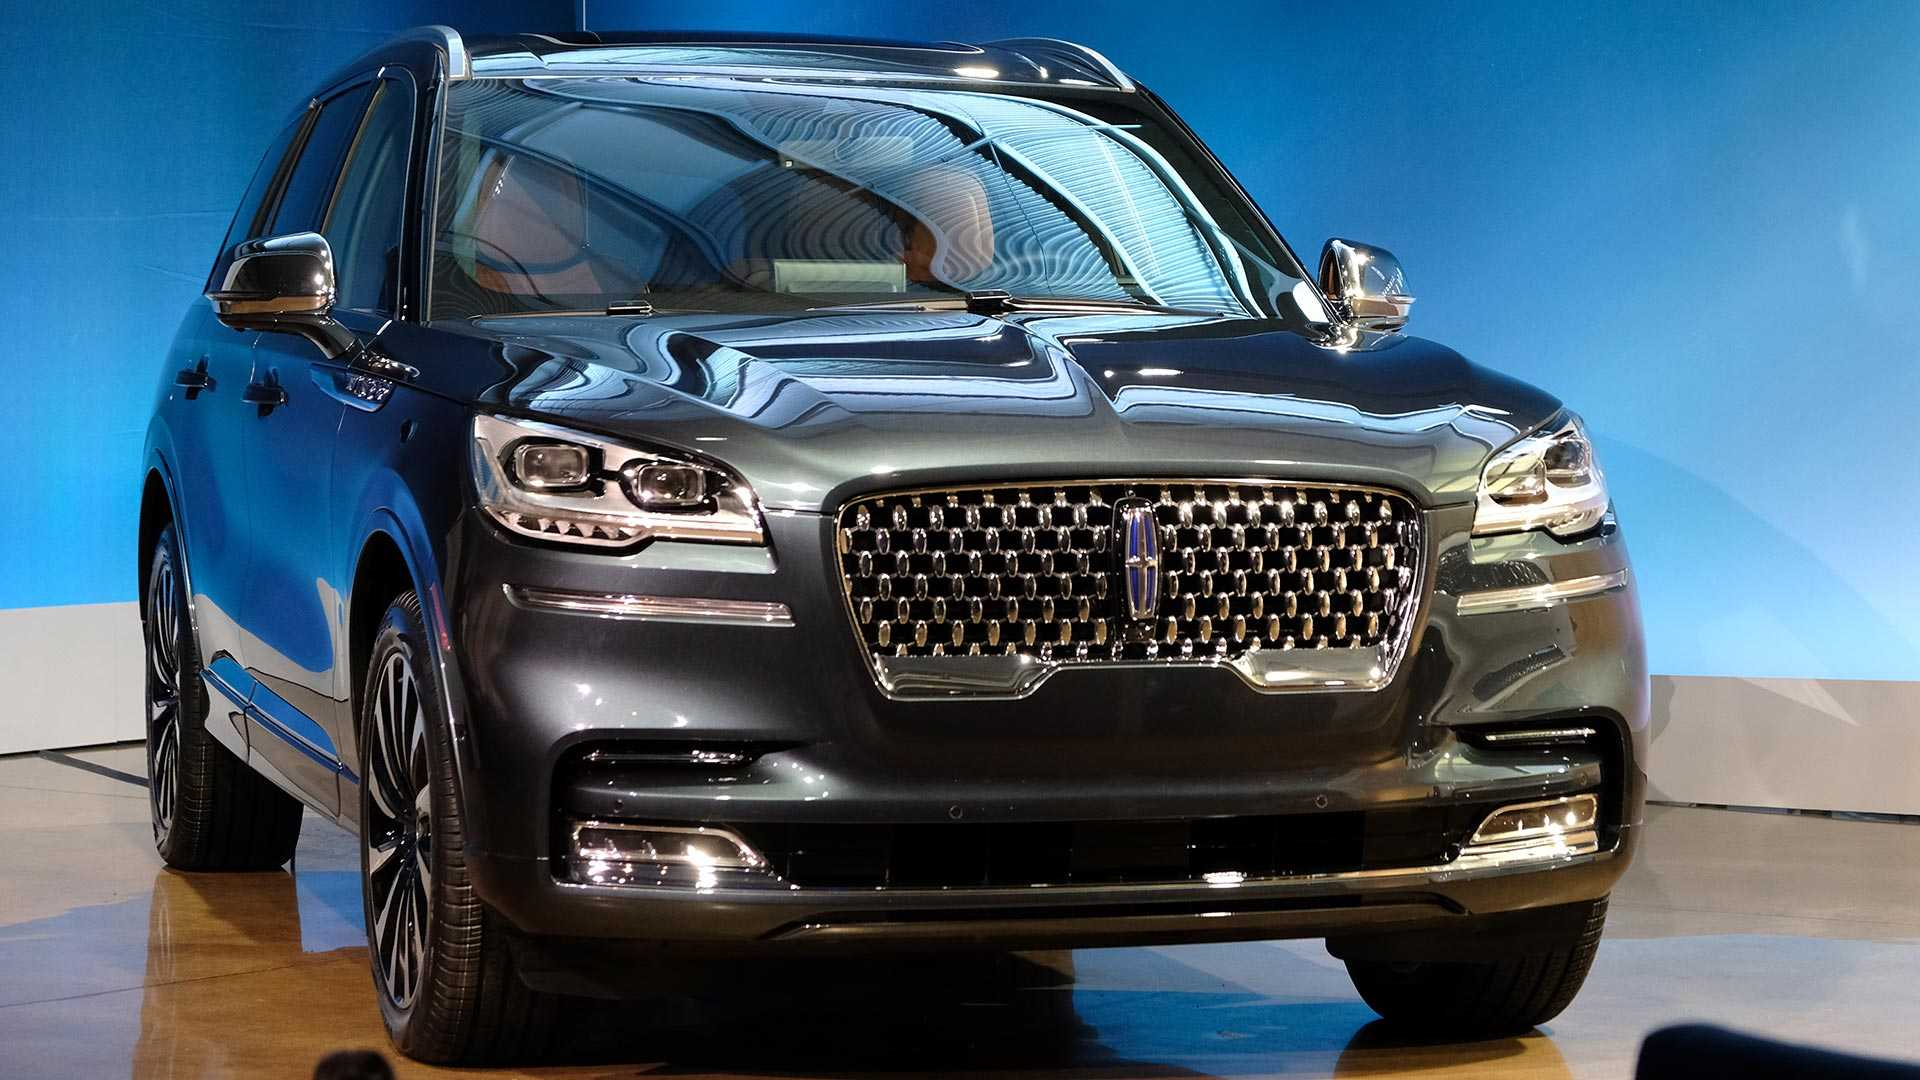 2020-lincoln-aviator-lo-dien-15.jpg